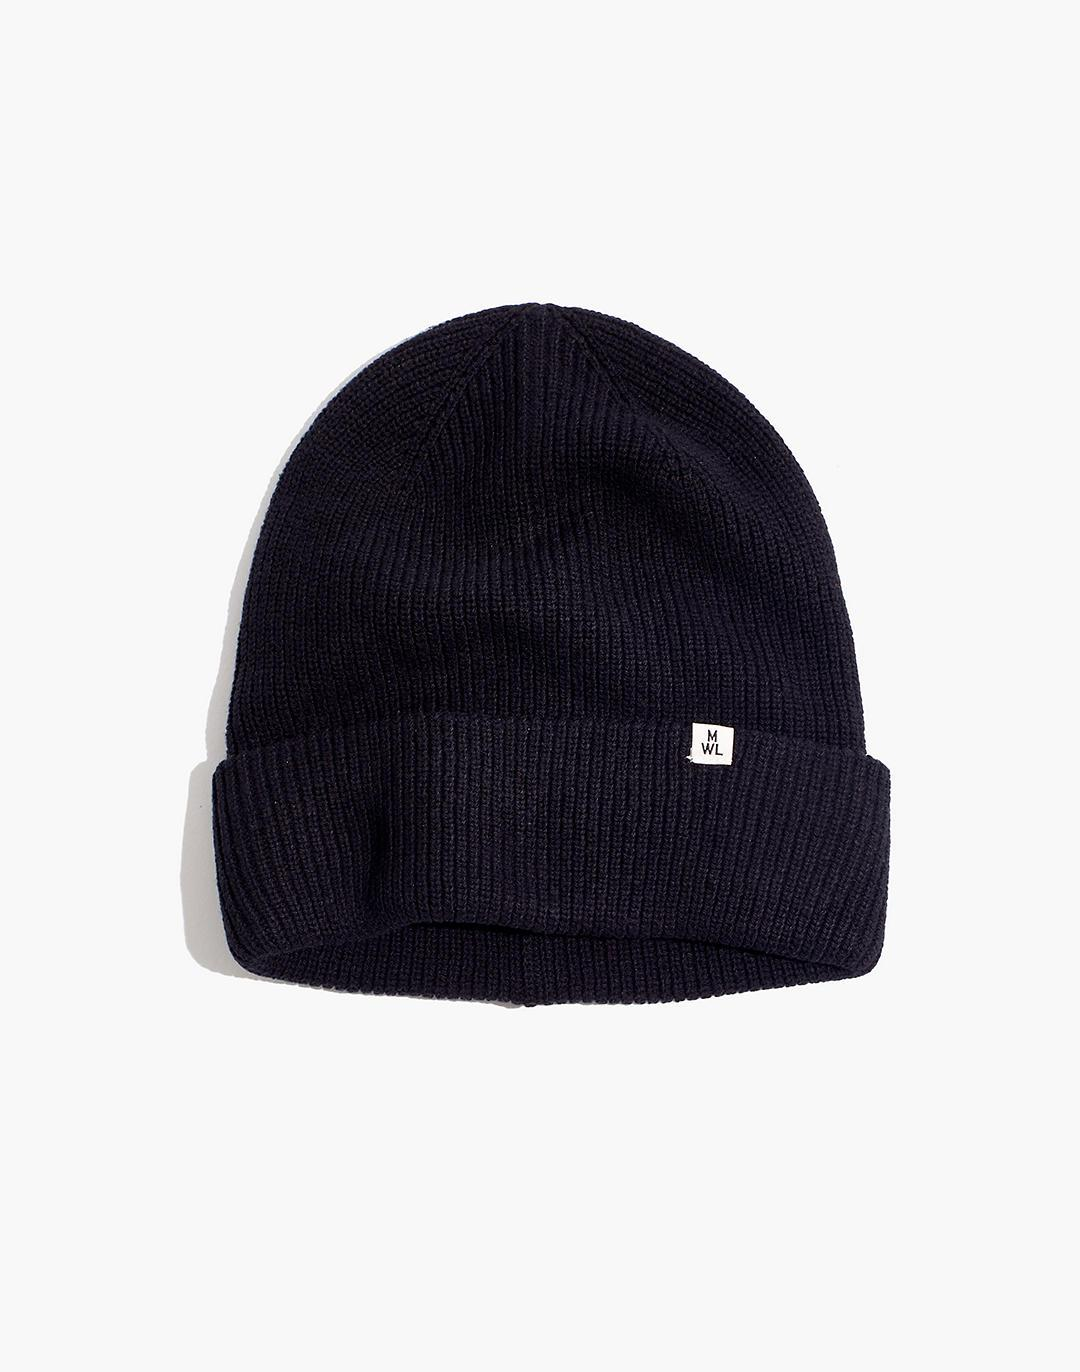 Recycled Cotton Cuffed Beanie